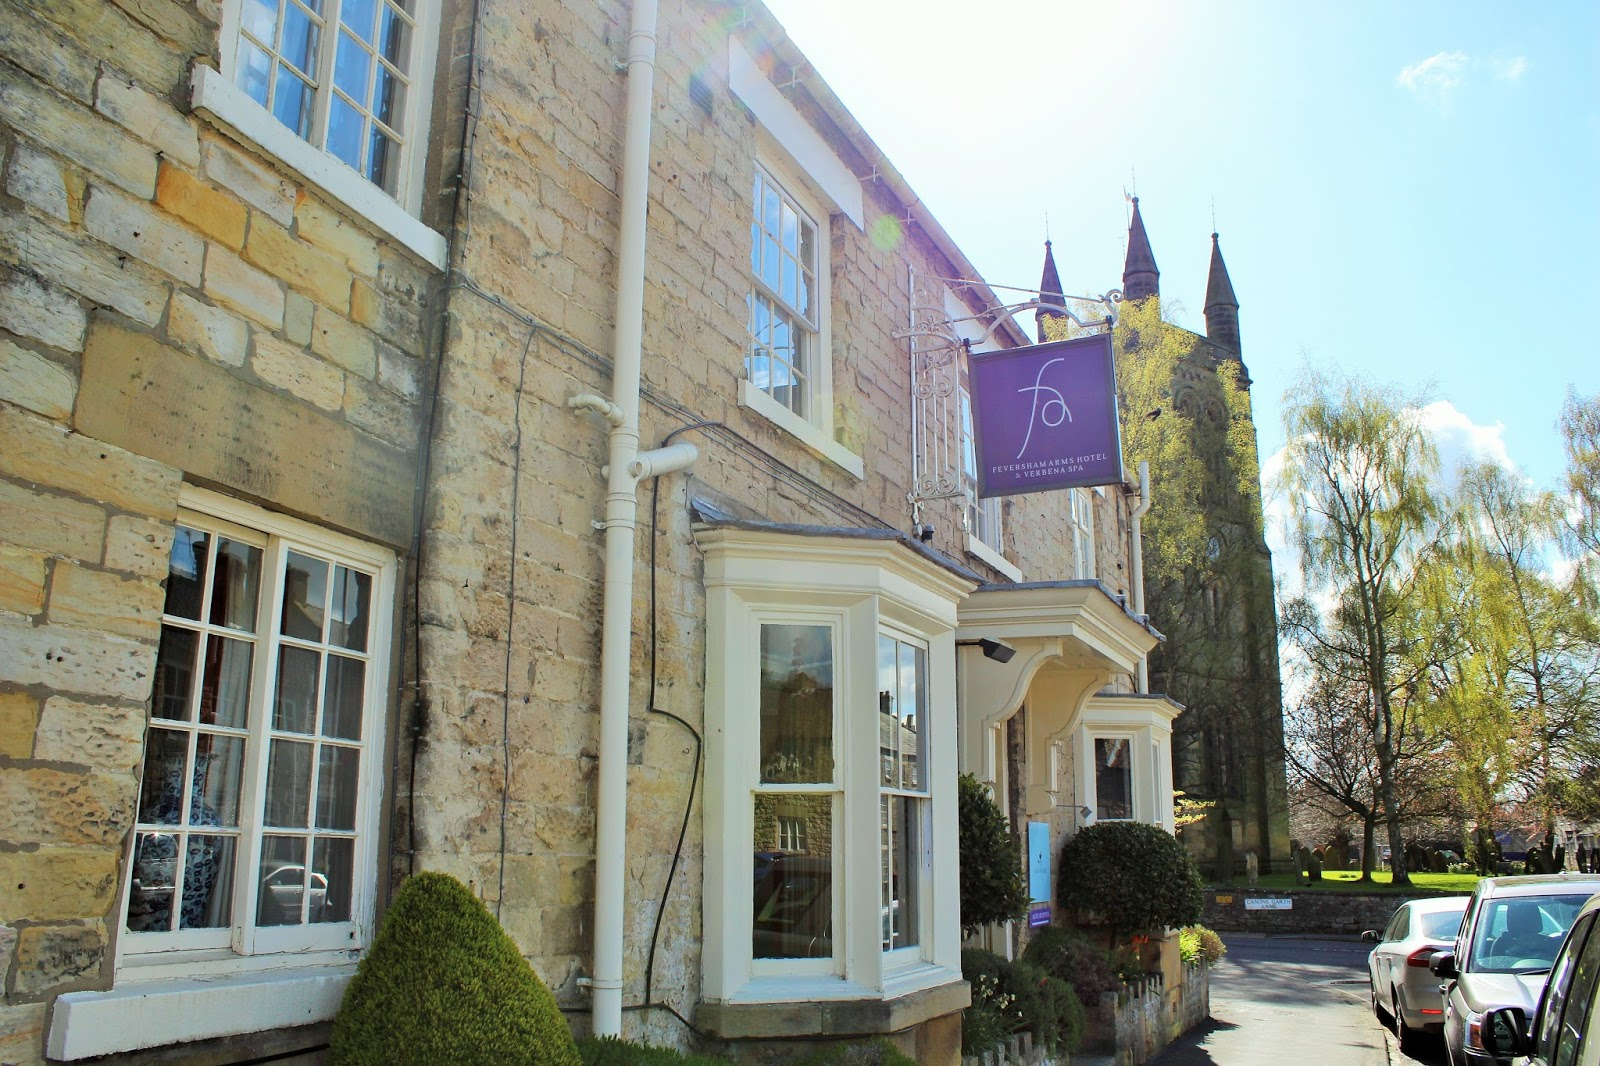 A Trip to North Yorkshire 4 - The Feversham Arms Hotel